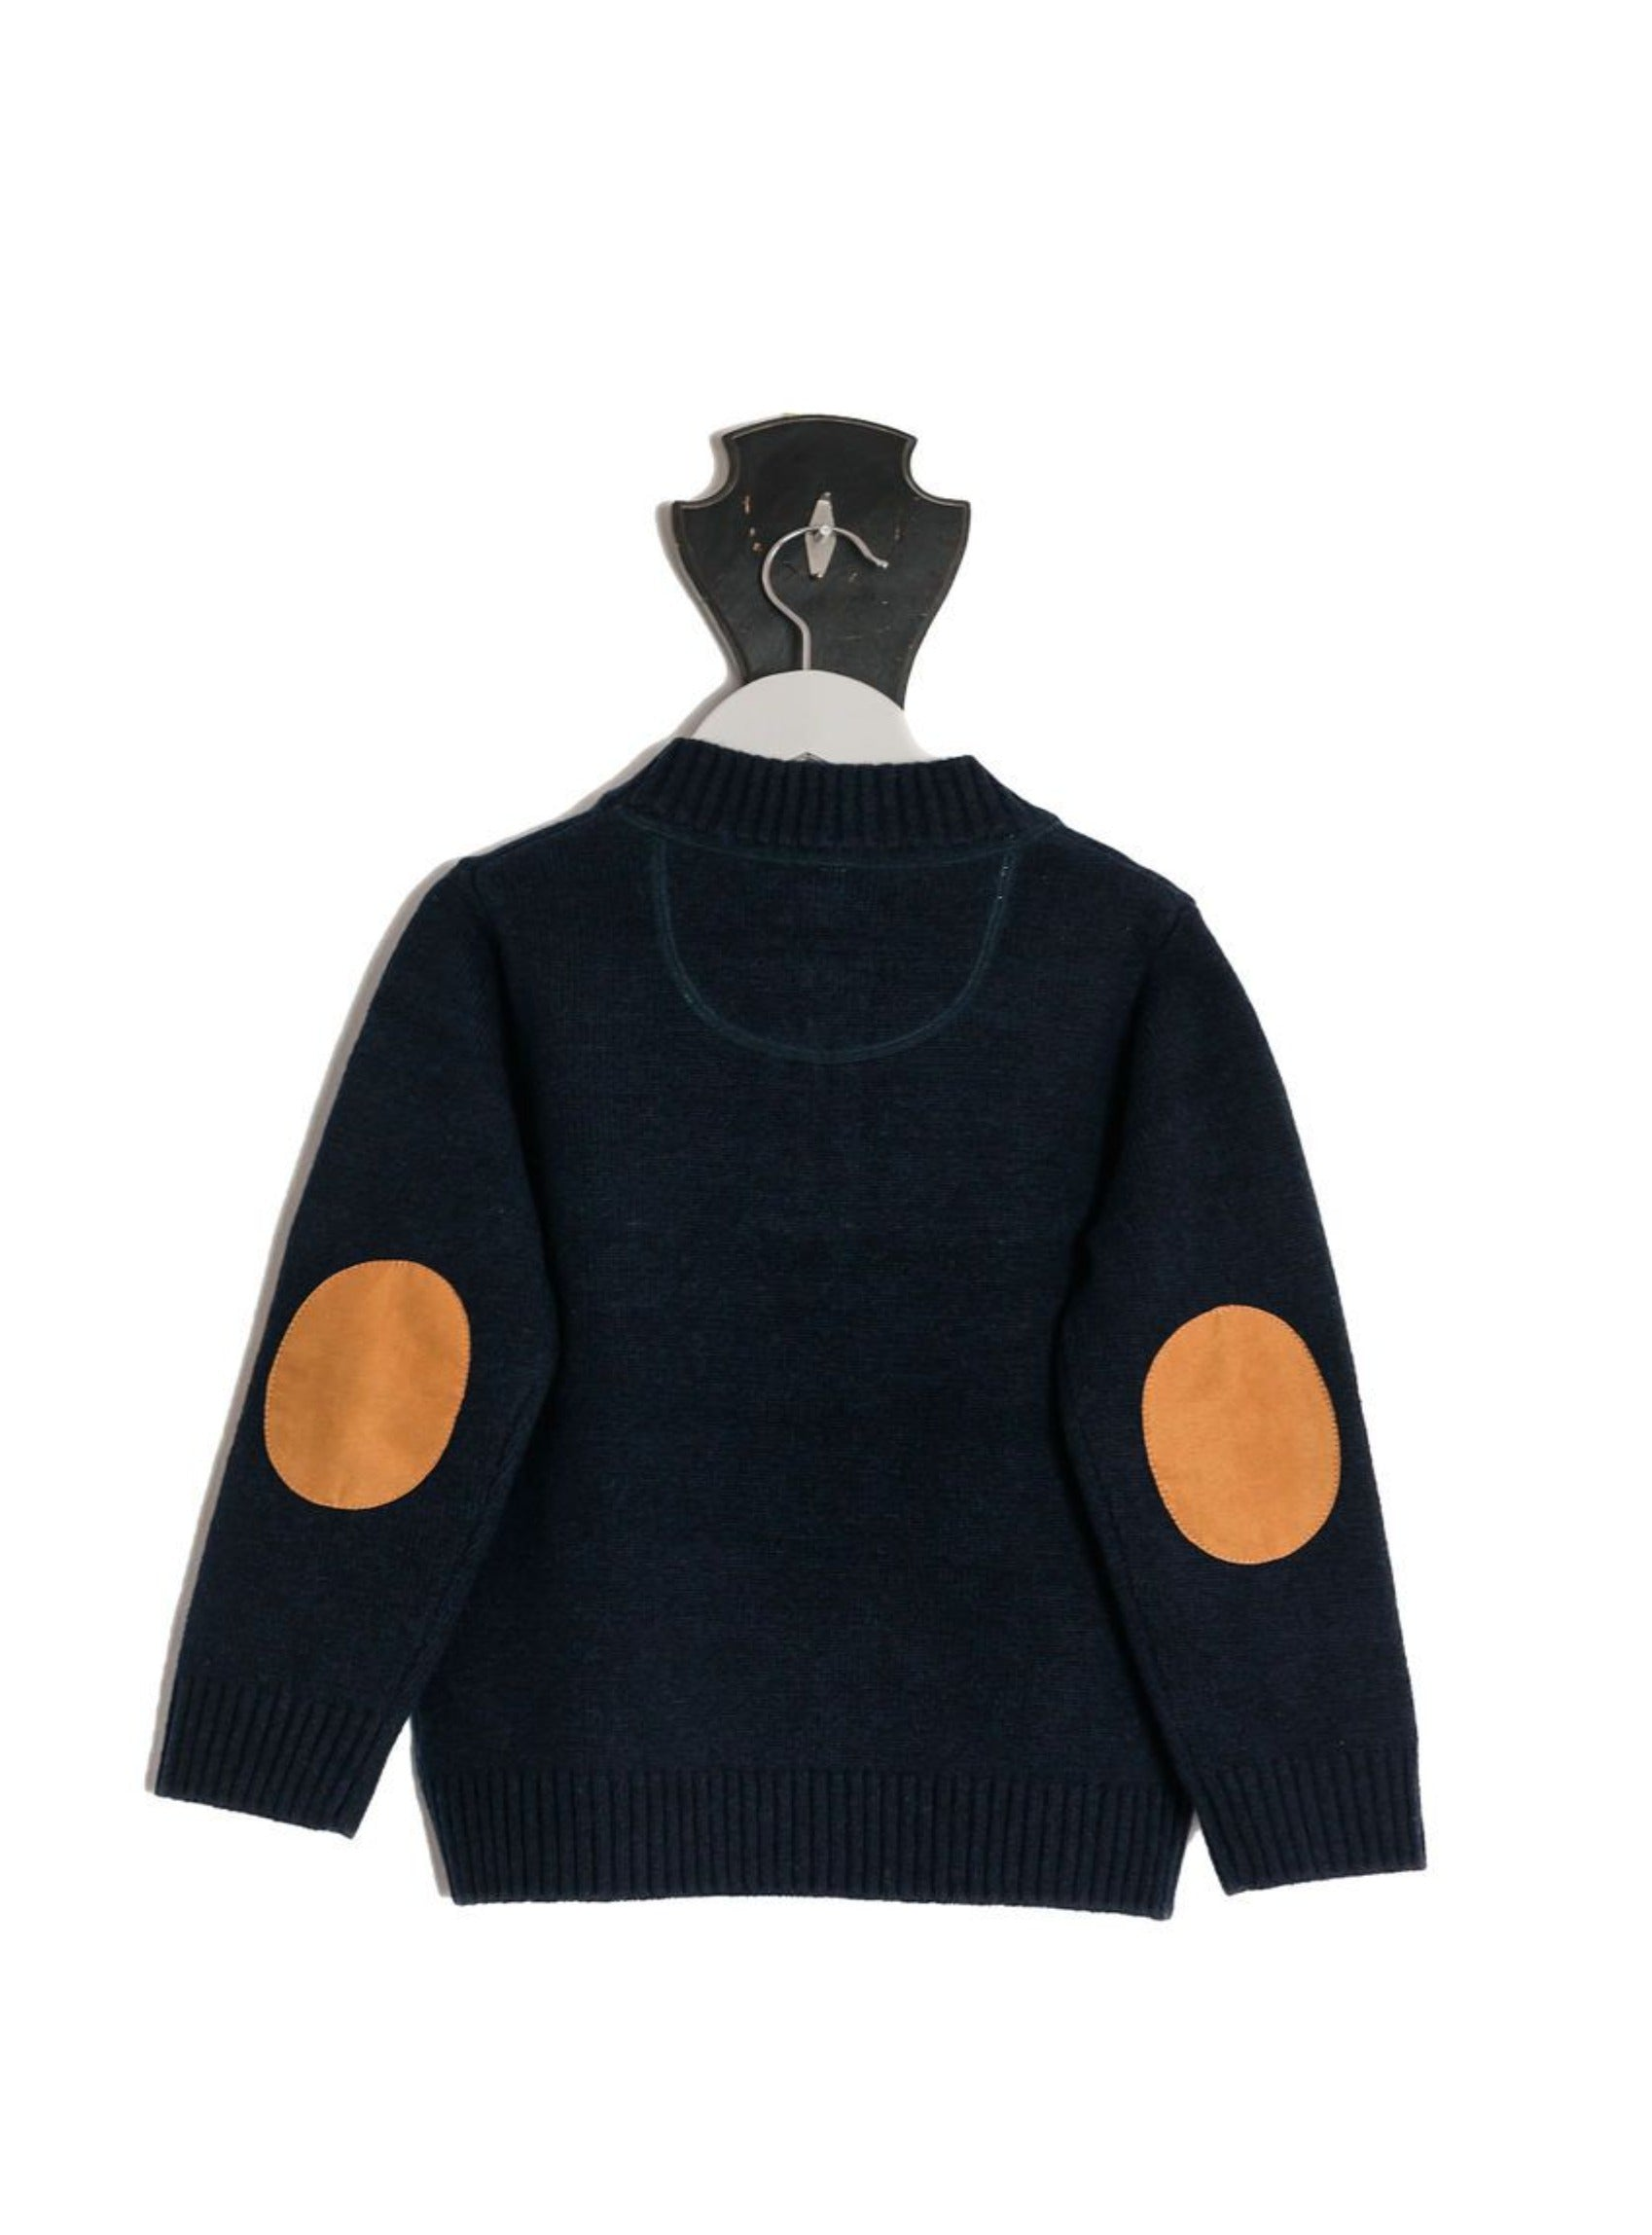 Navy Hunter Jumper with Tan Patches